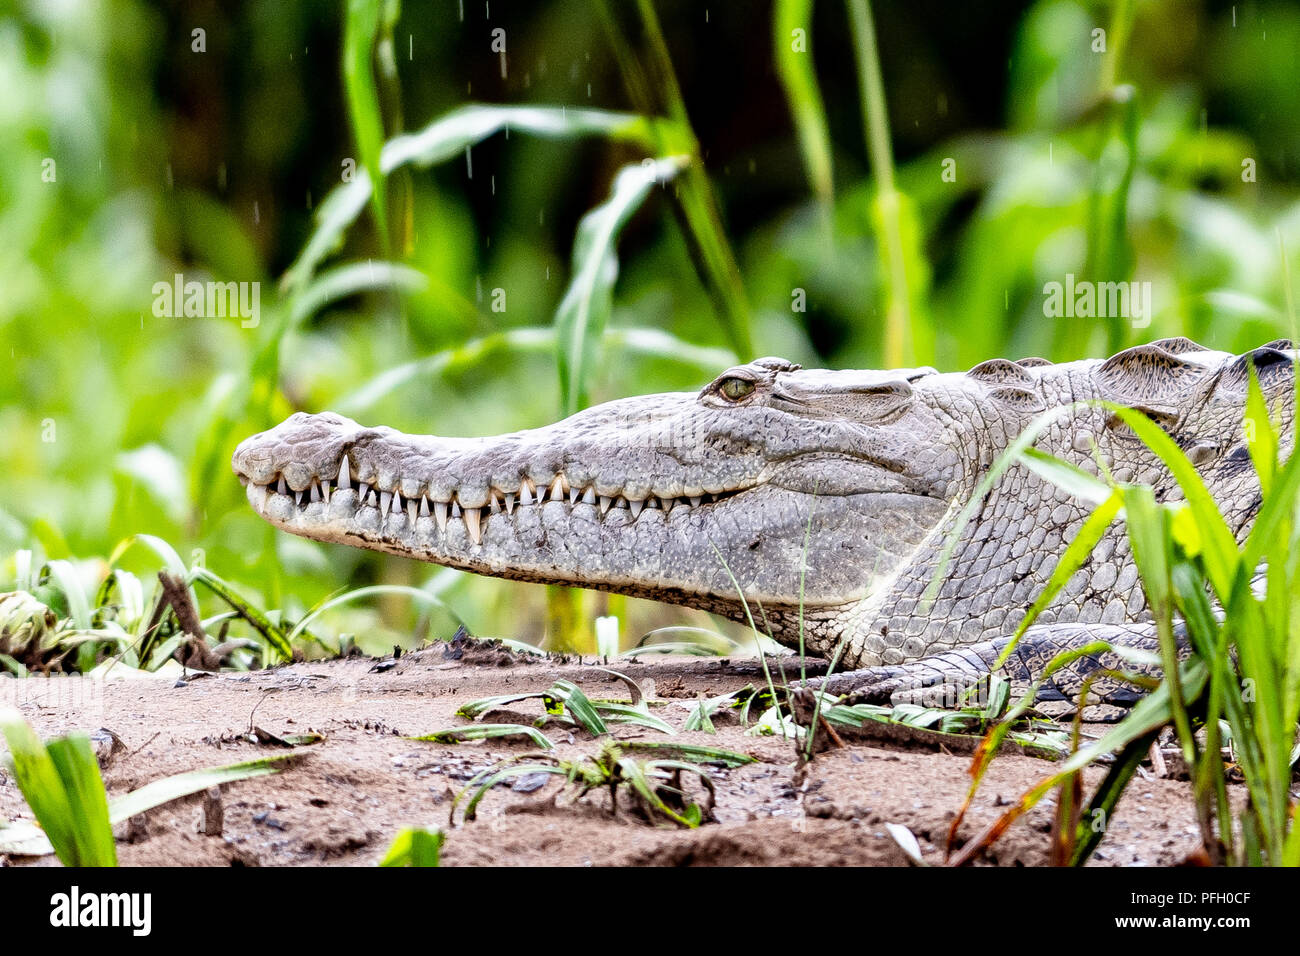 Un alligator sur la rive du Rio San Carlos. Photo Stock